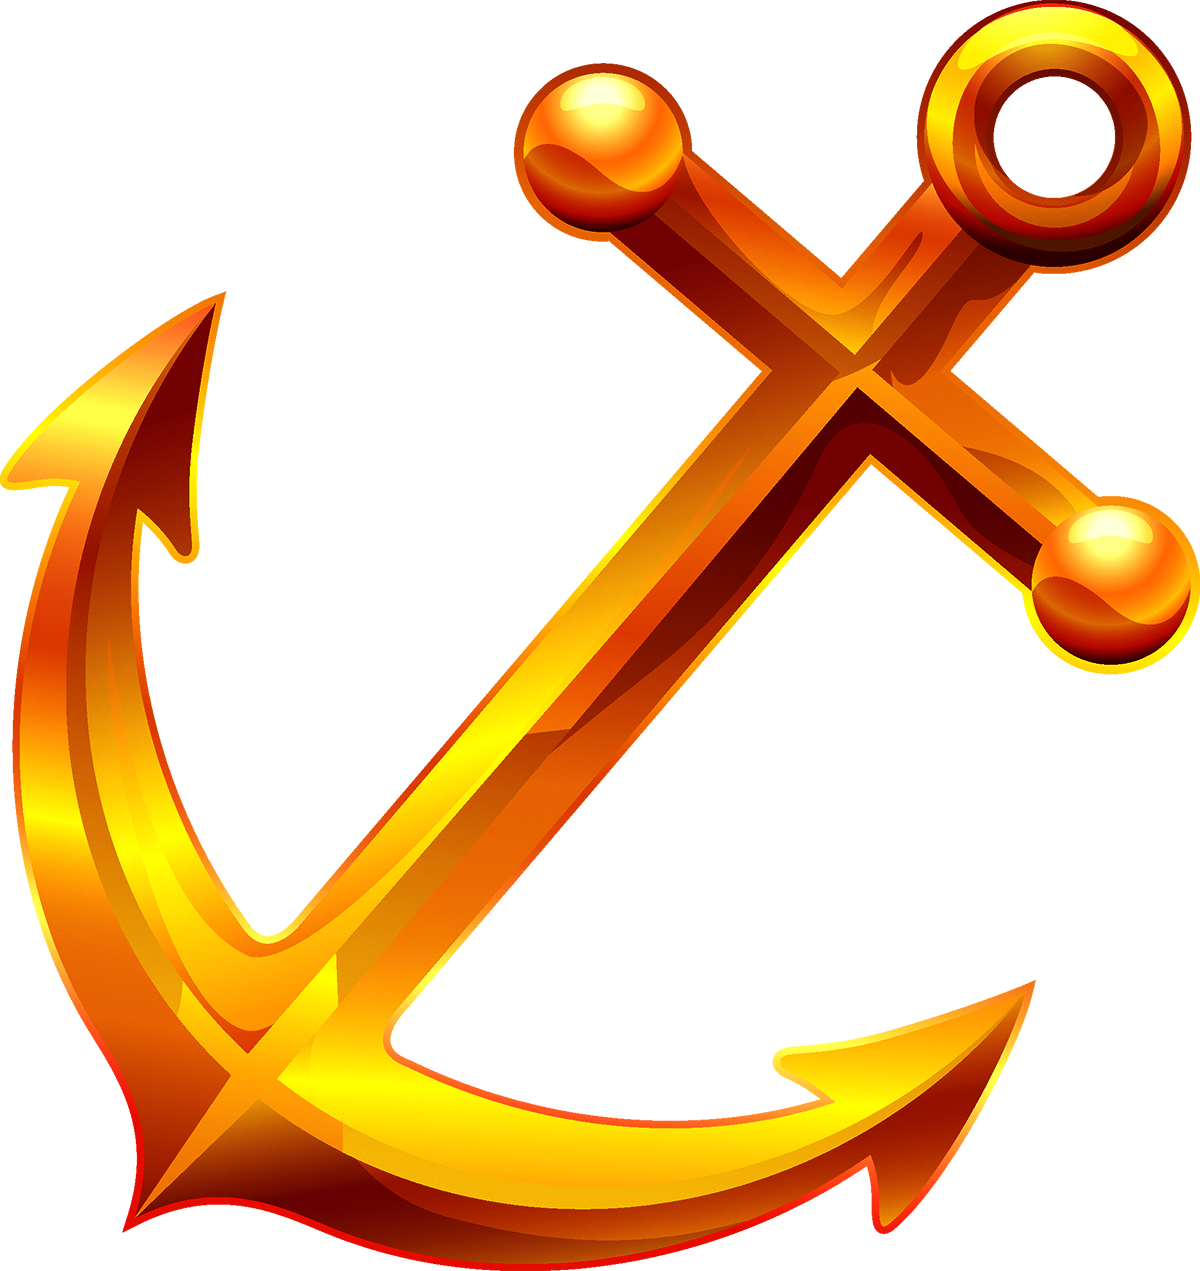 Clipart anchor yellow anchor. Clip art anchors transprent